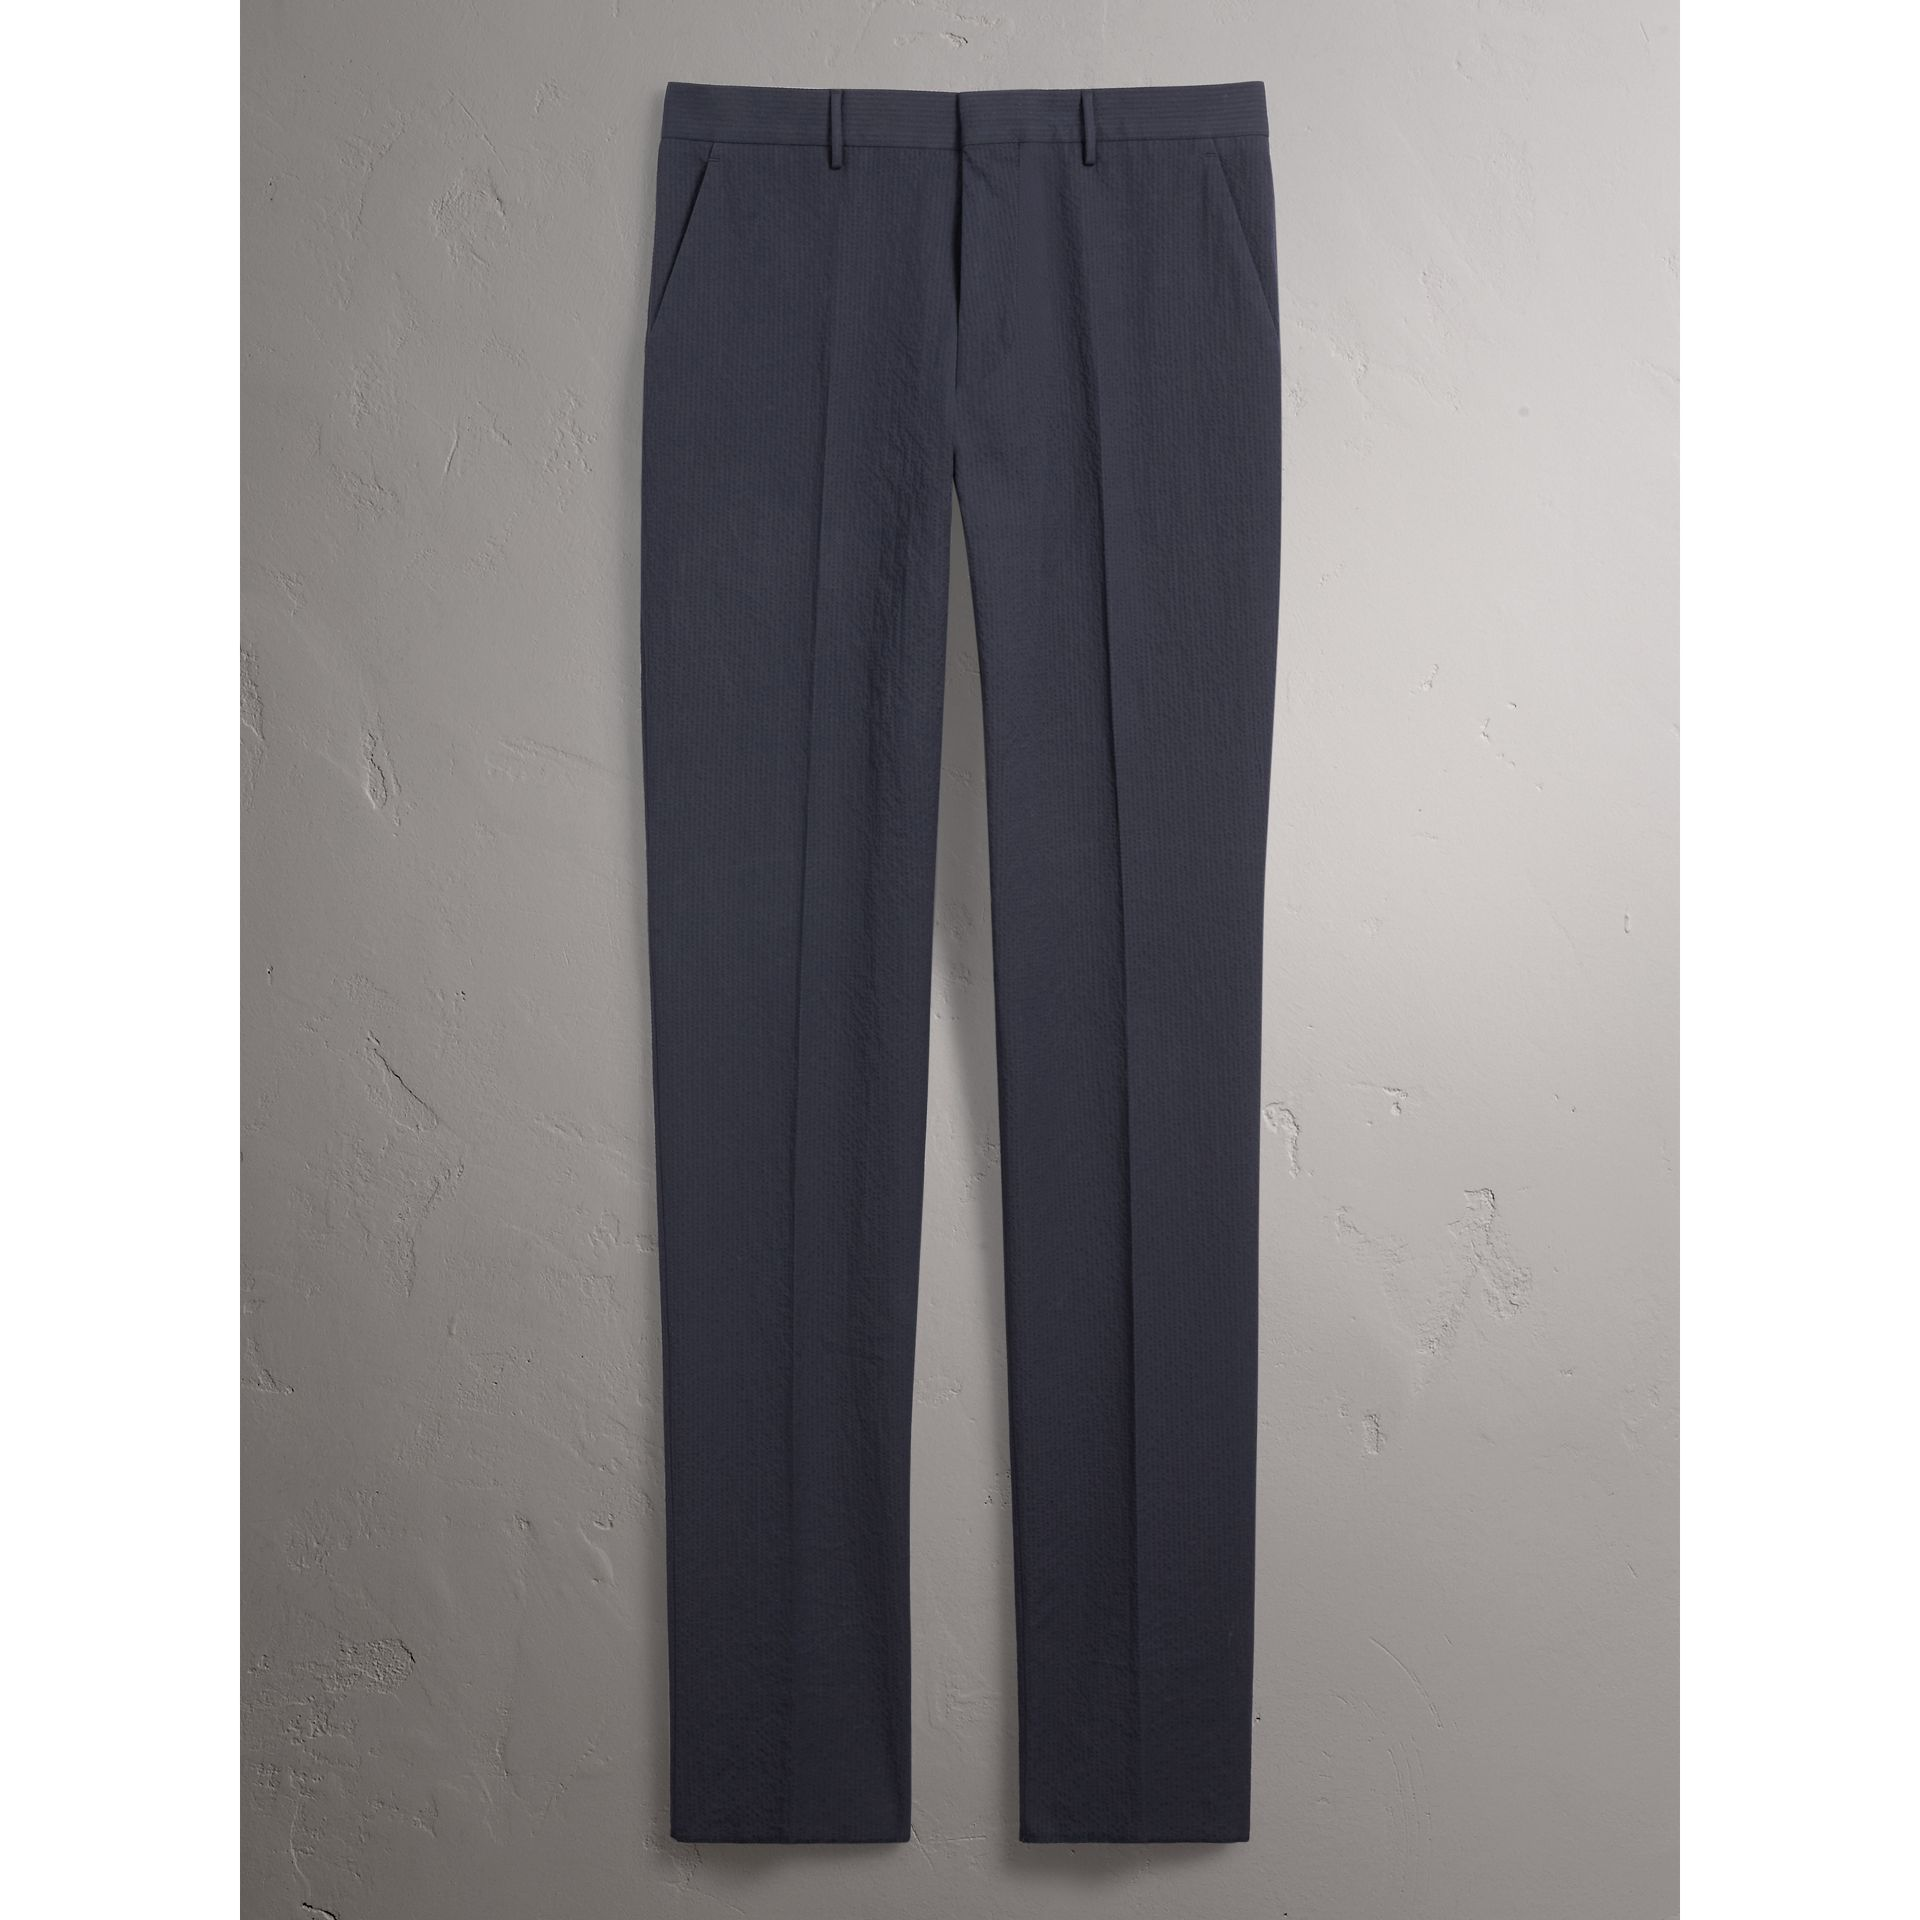 Slim Fit Textured Stretch Cotton Trousers in Navy - Men | Burberry - gallery image 4